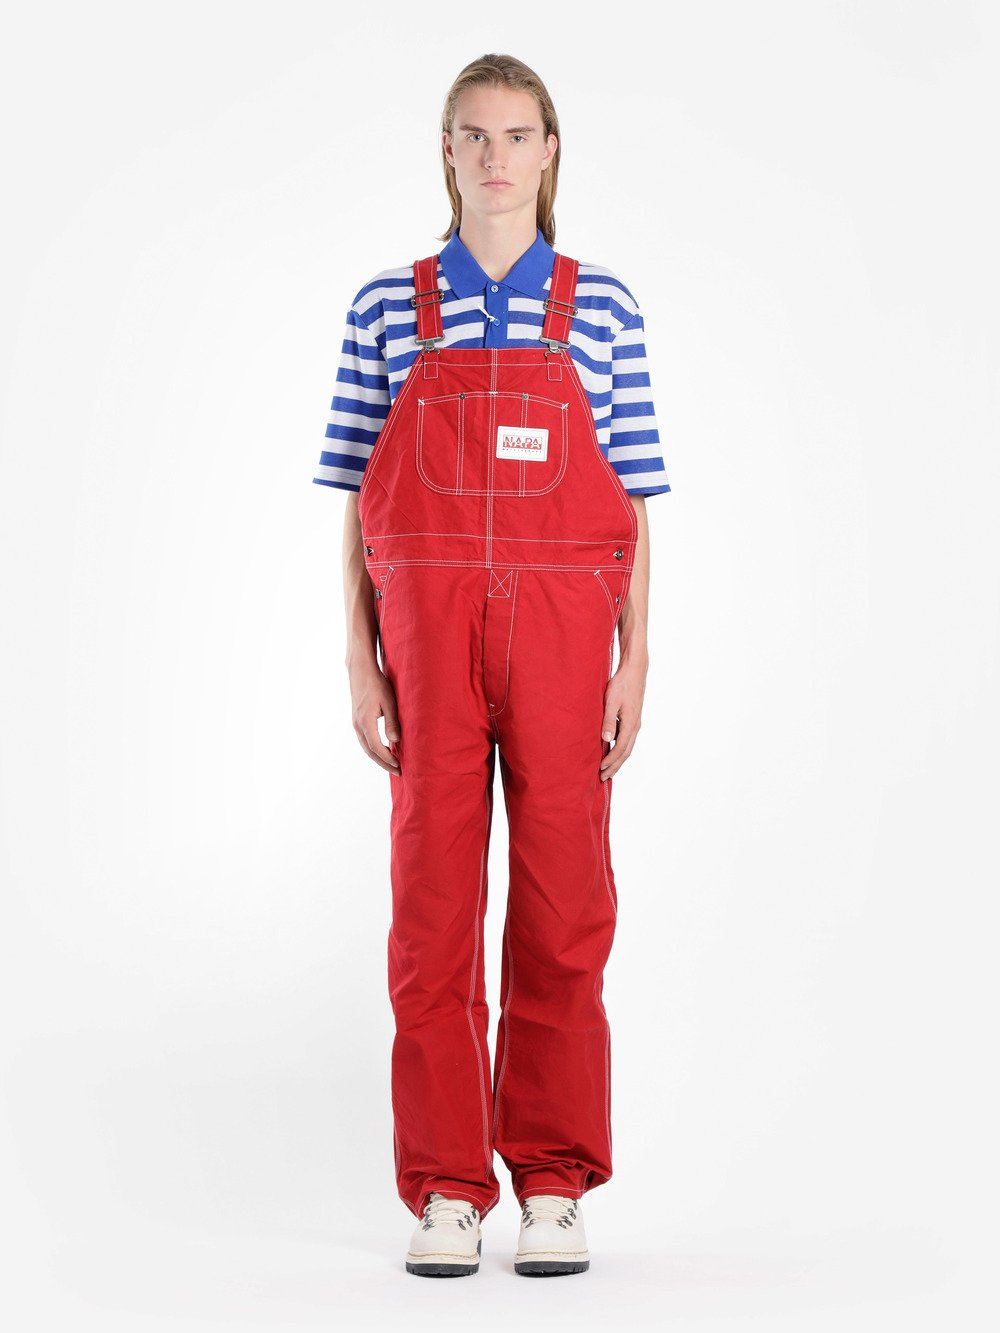 NAPA BY MARTINE ROSE CONTRAST STITCH DUNGAREES